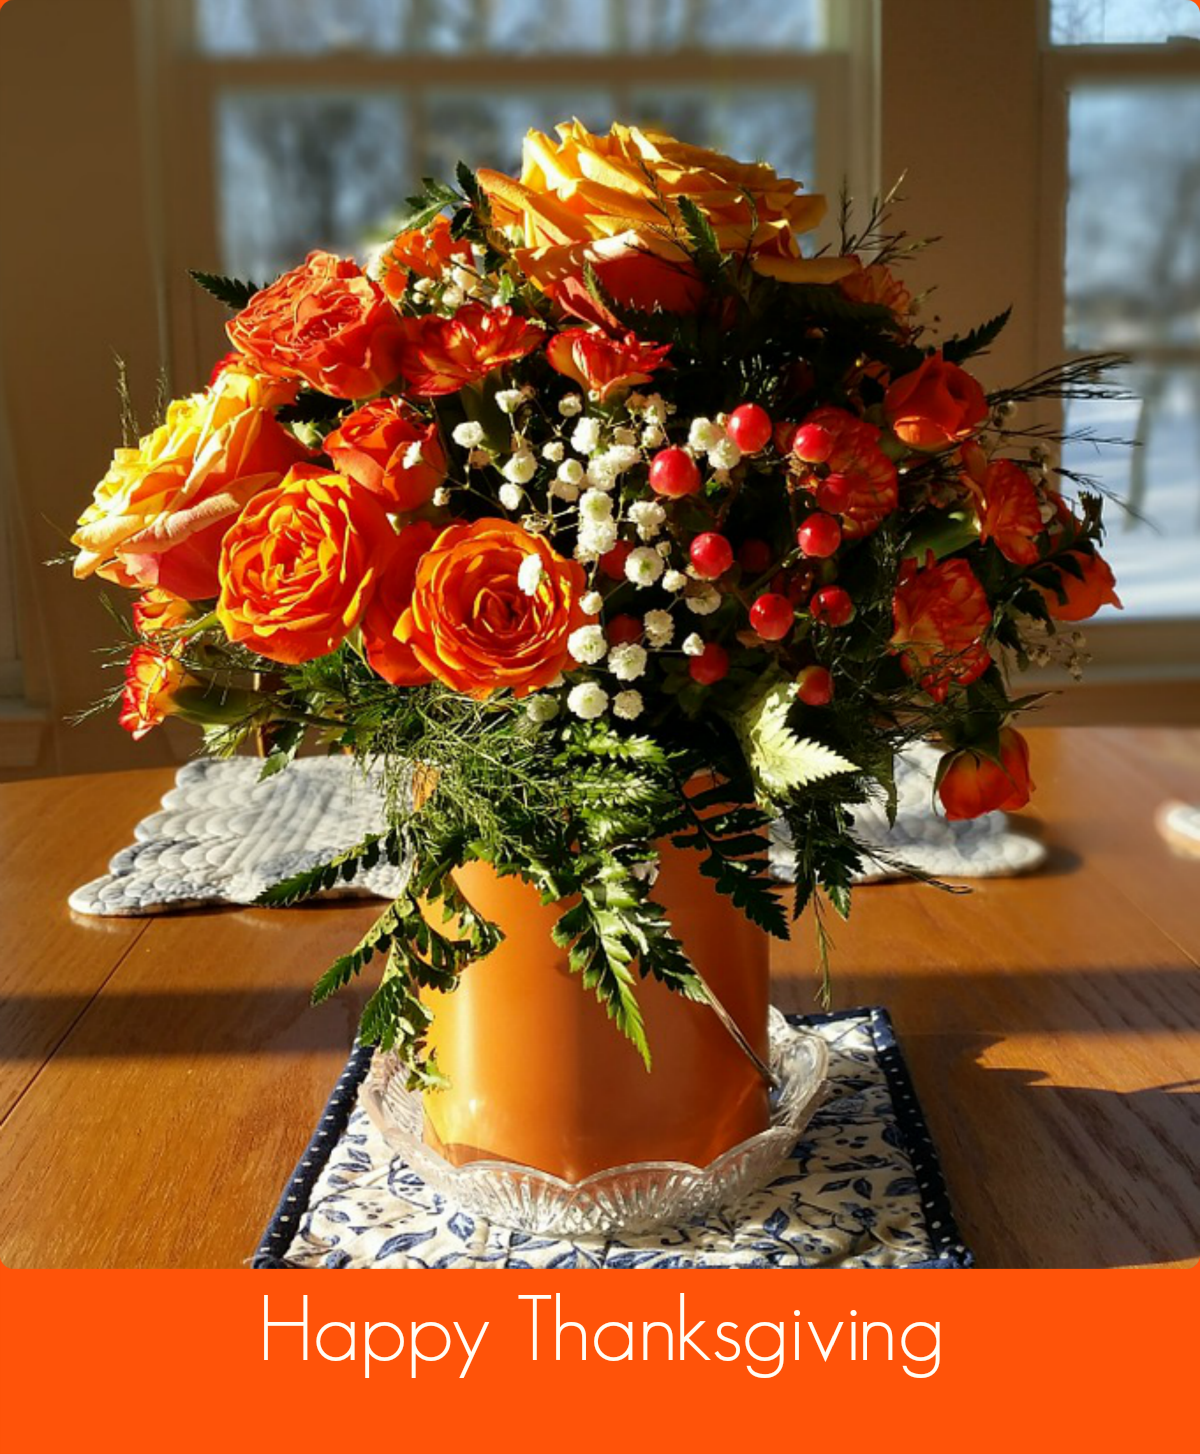 Happy Thanksgiving from the Wonderful Wednesday Blog Hop ...